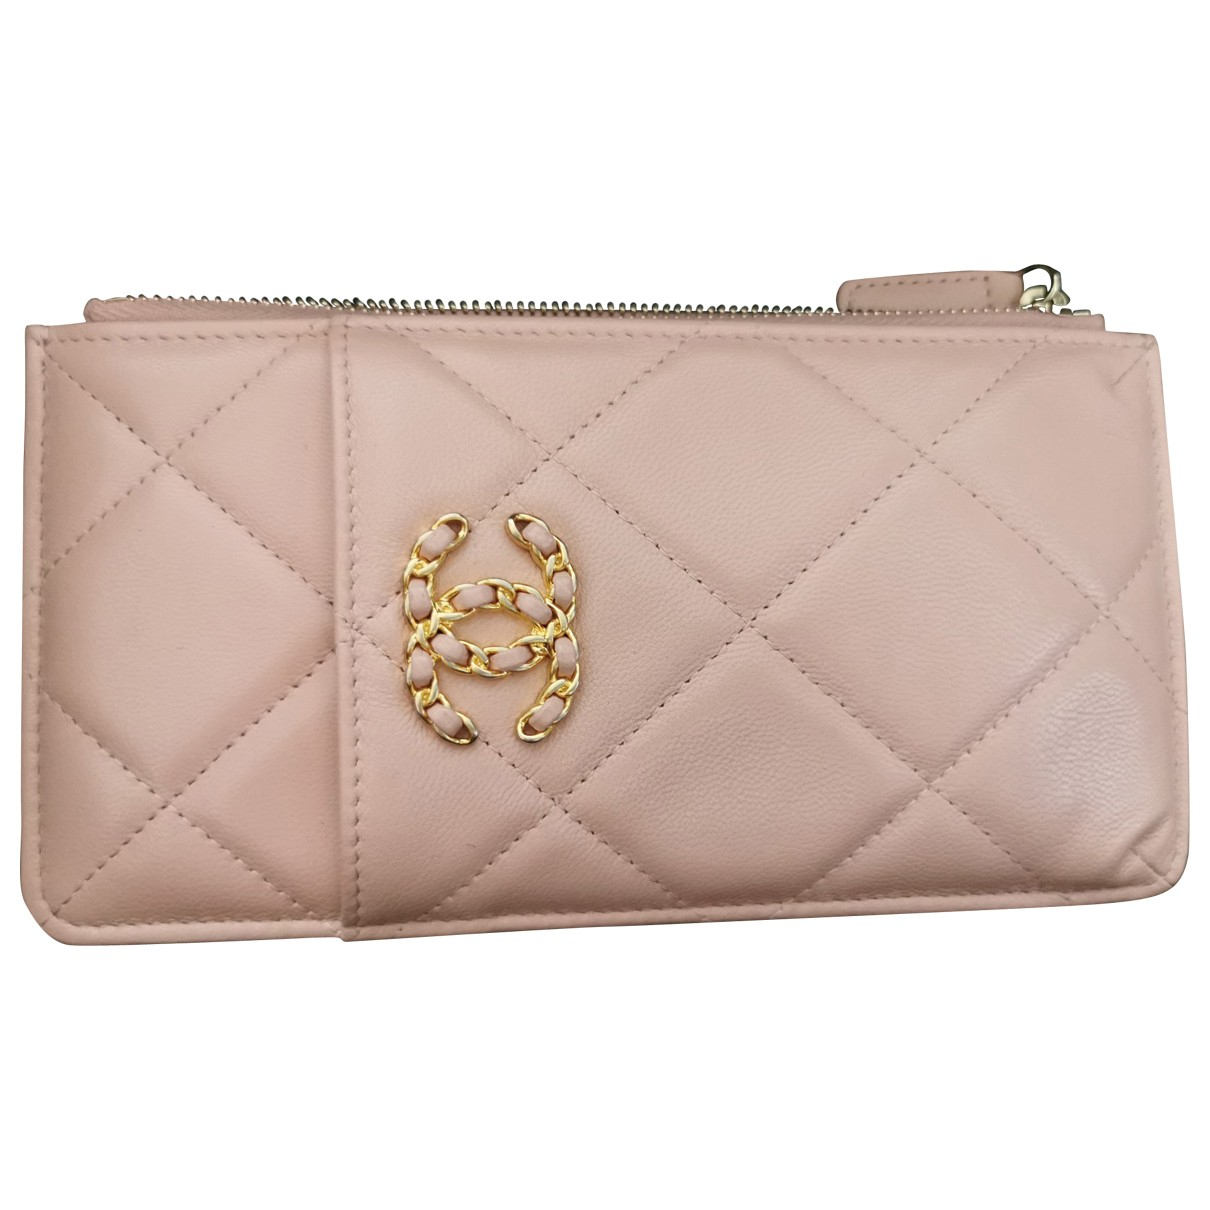 Chanel \N Beige Leather Purses, wallet & cases for Women \N